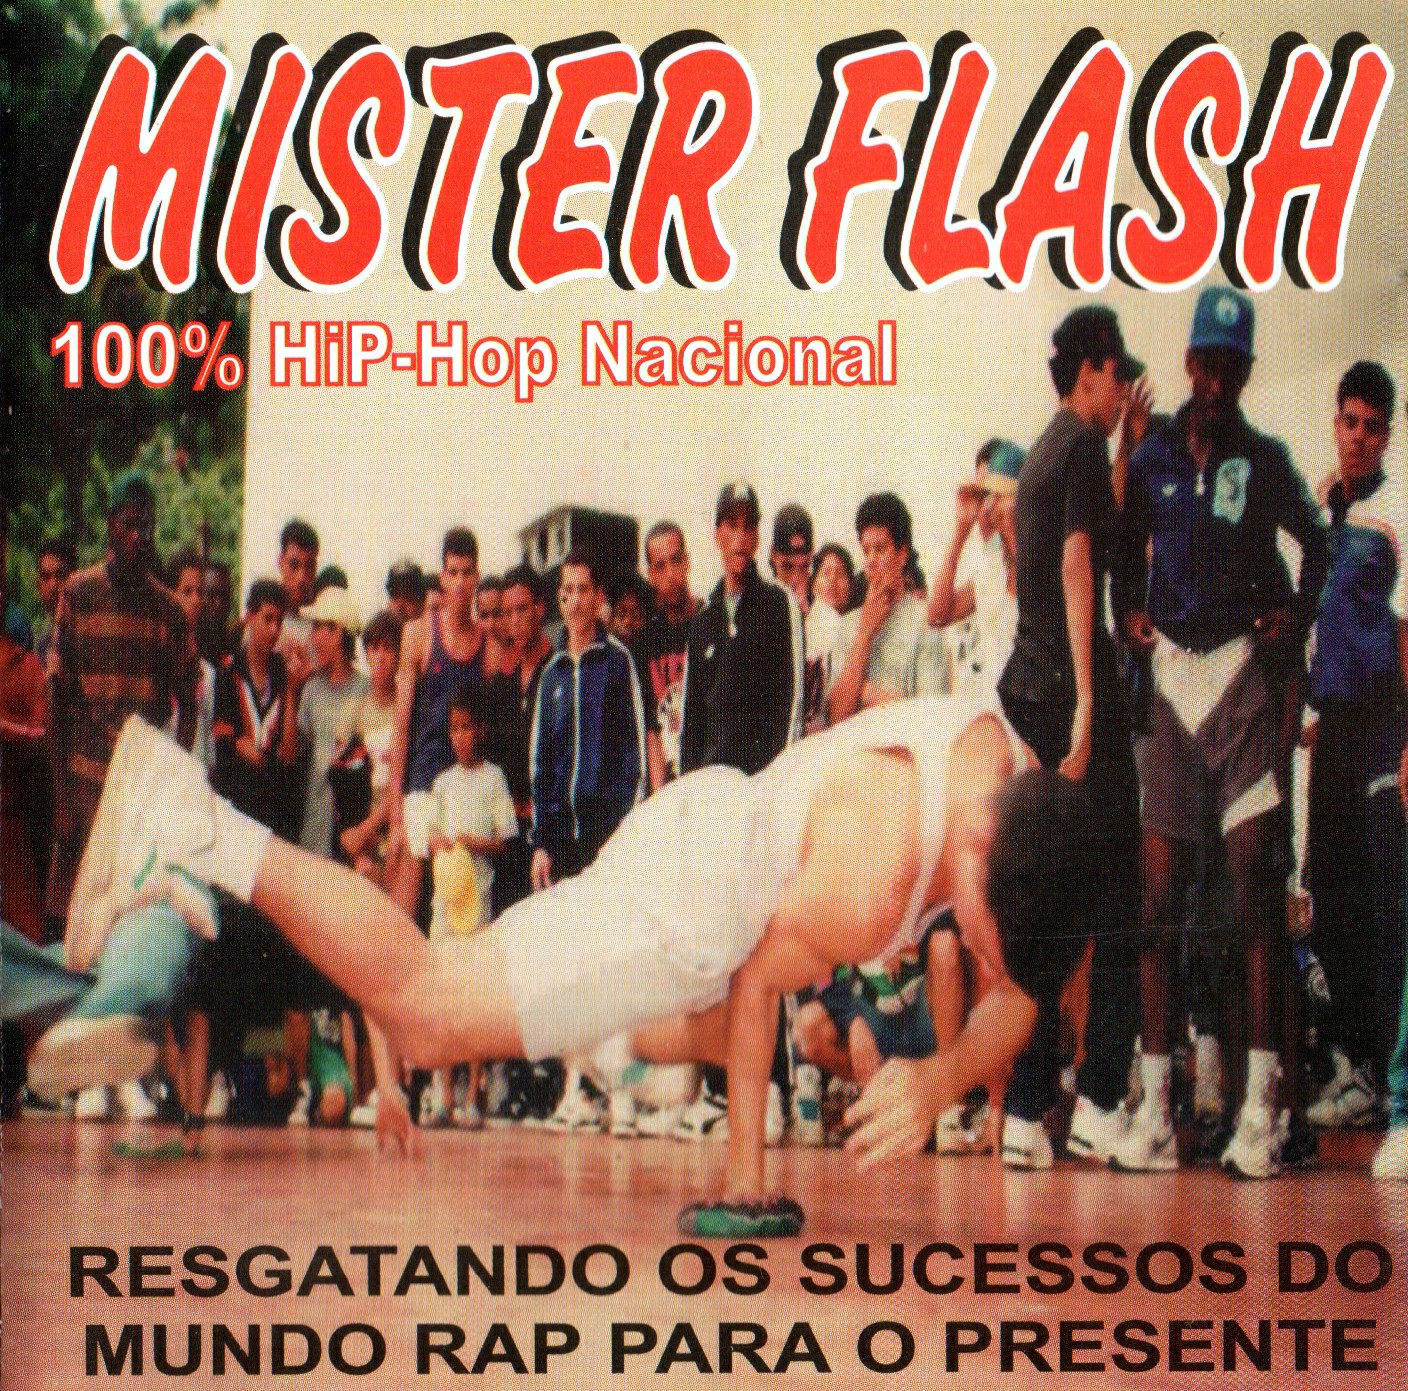 MISTER FLASH 100% HIP HOP NACIONAL